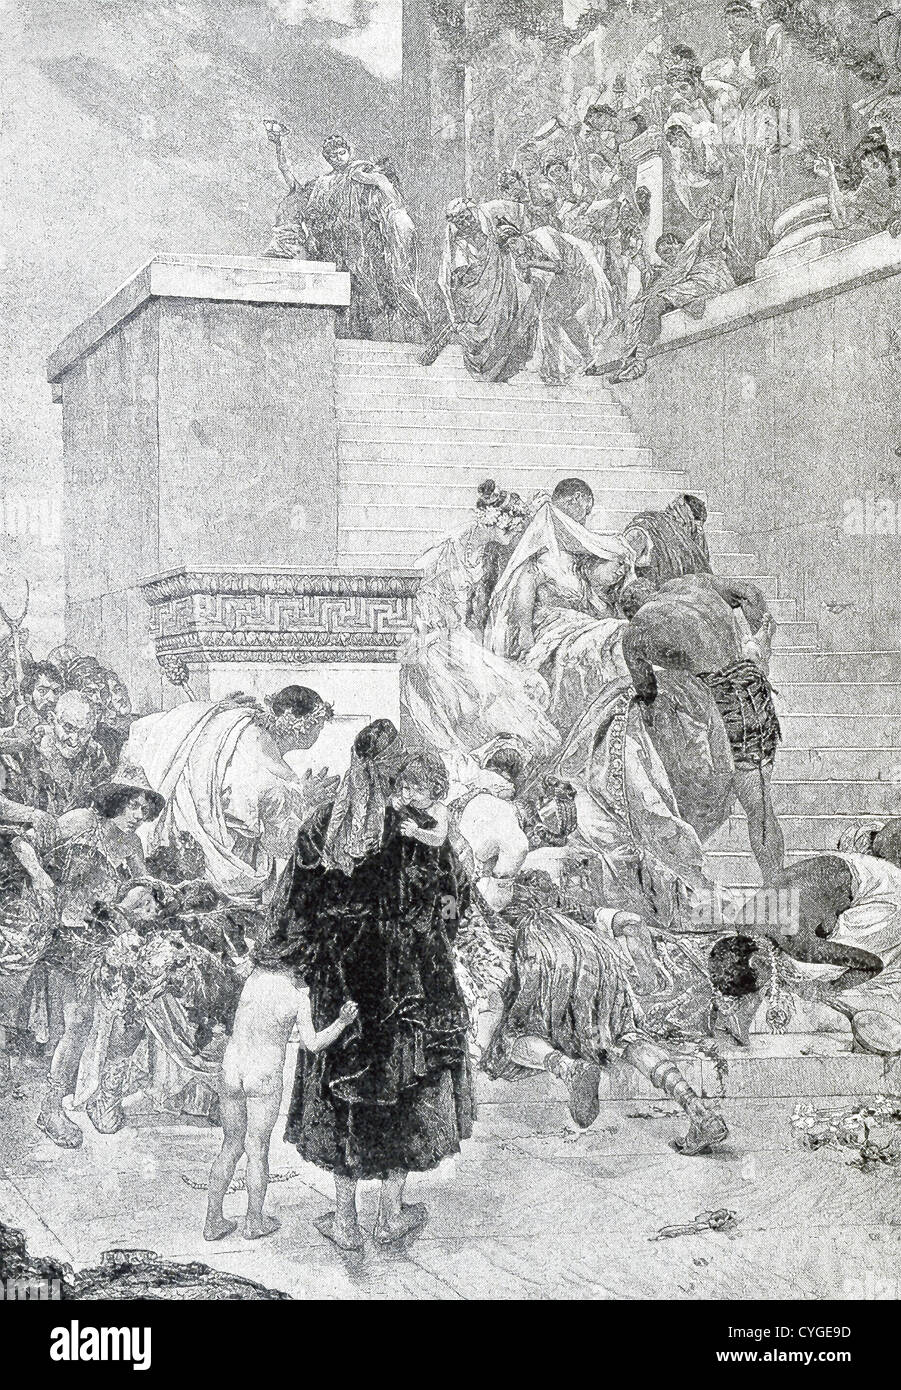 Rome's emperor Nero standing by the corpse of his dead mother Agrippina being carried up the stairs. - Stock Image